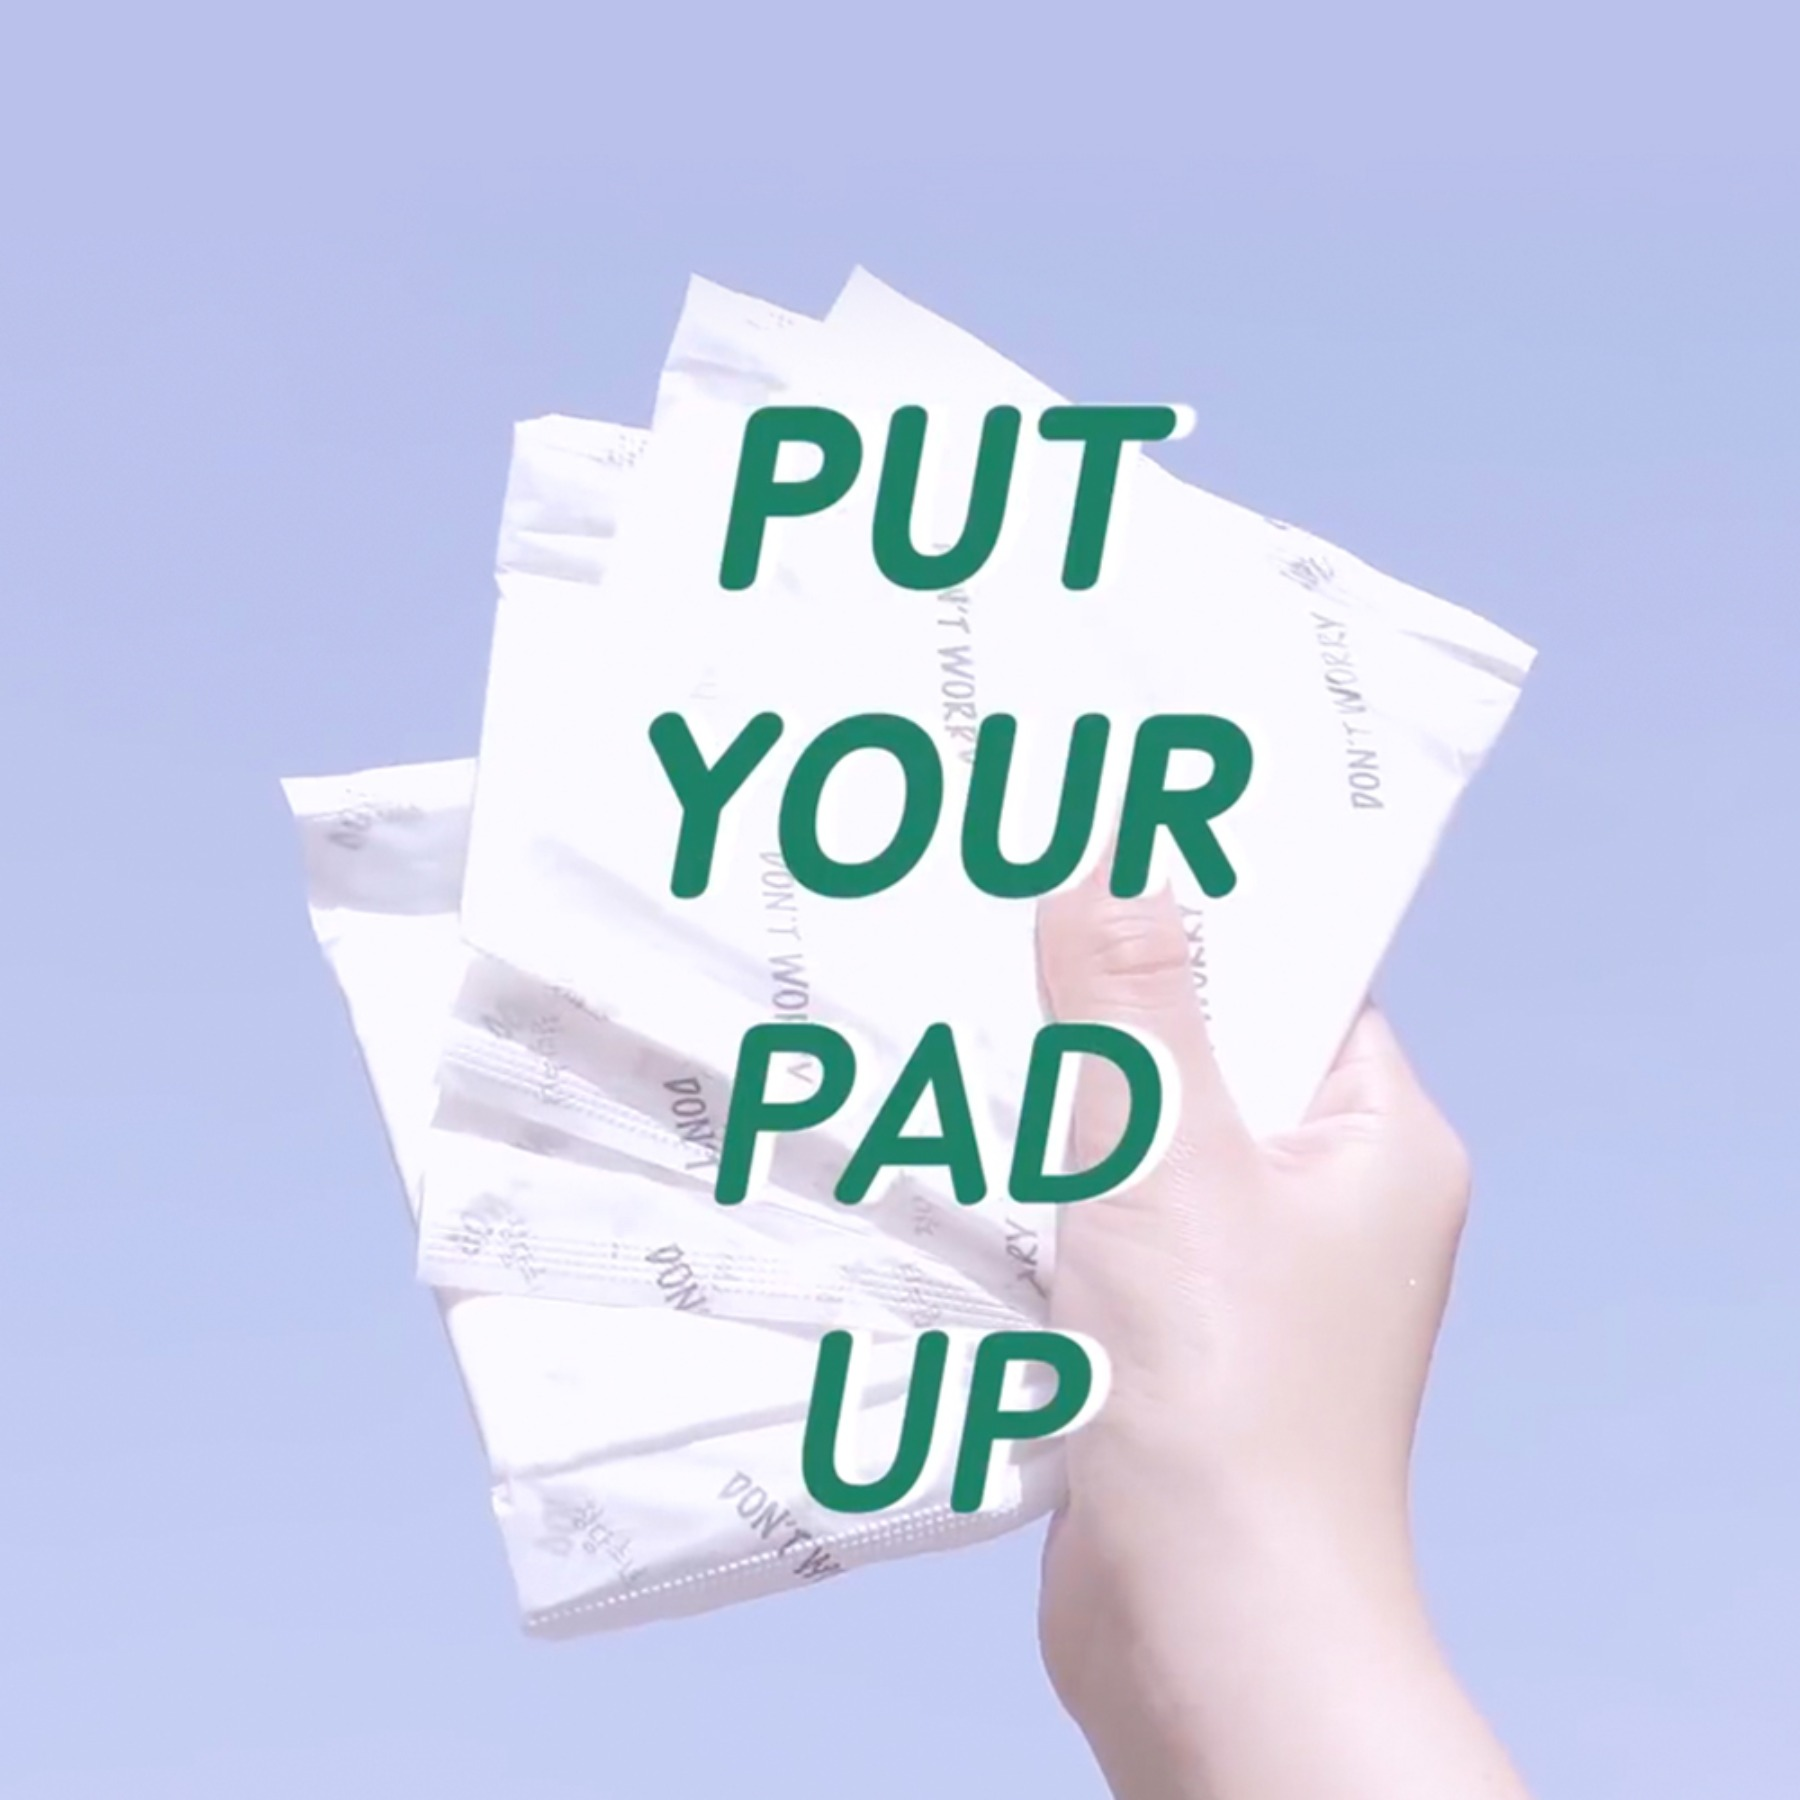 PUT YOUR PAD UP!